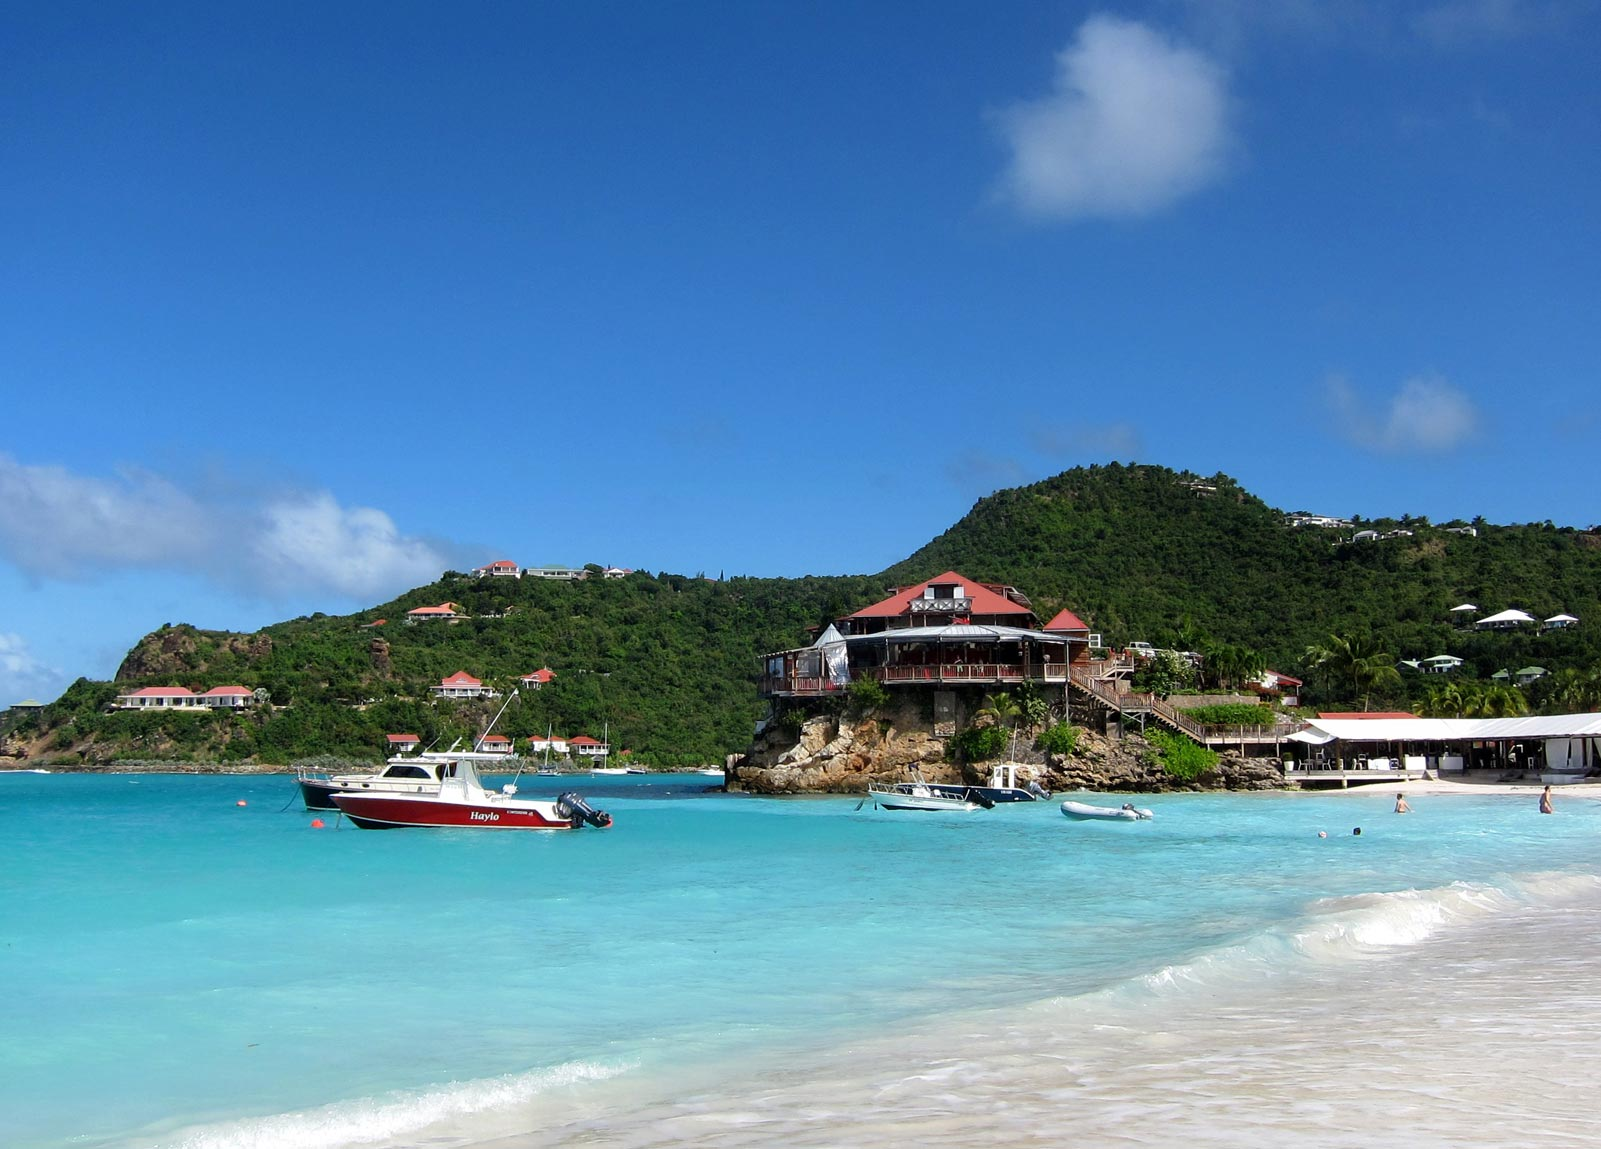 St barts weather the best time to travel to st barts for St barts in the caribbean